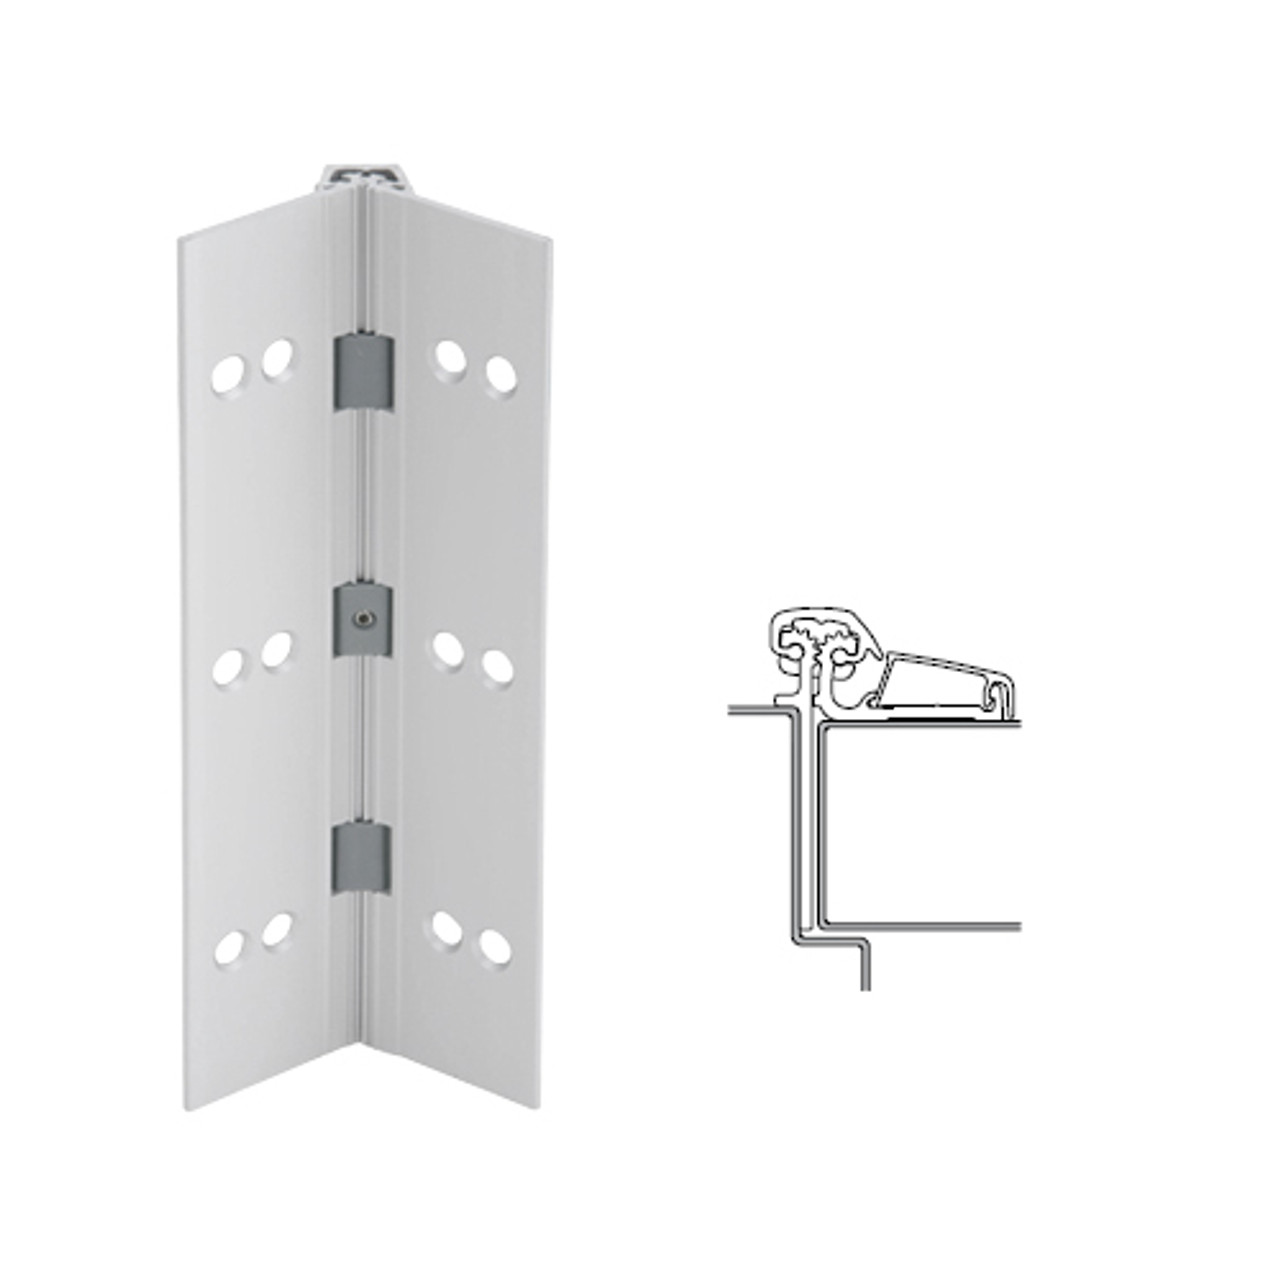 054XY-US28-120-SECWDWD IVES Adjustable Half Surface Continuous Geared Hinges with Security Screws - Hex Pin Drive in Satin Aluminum